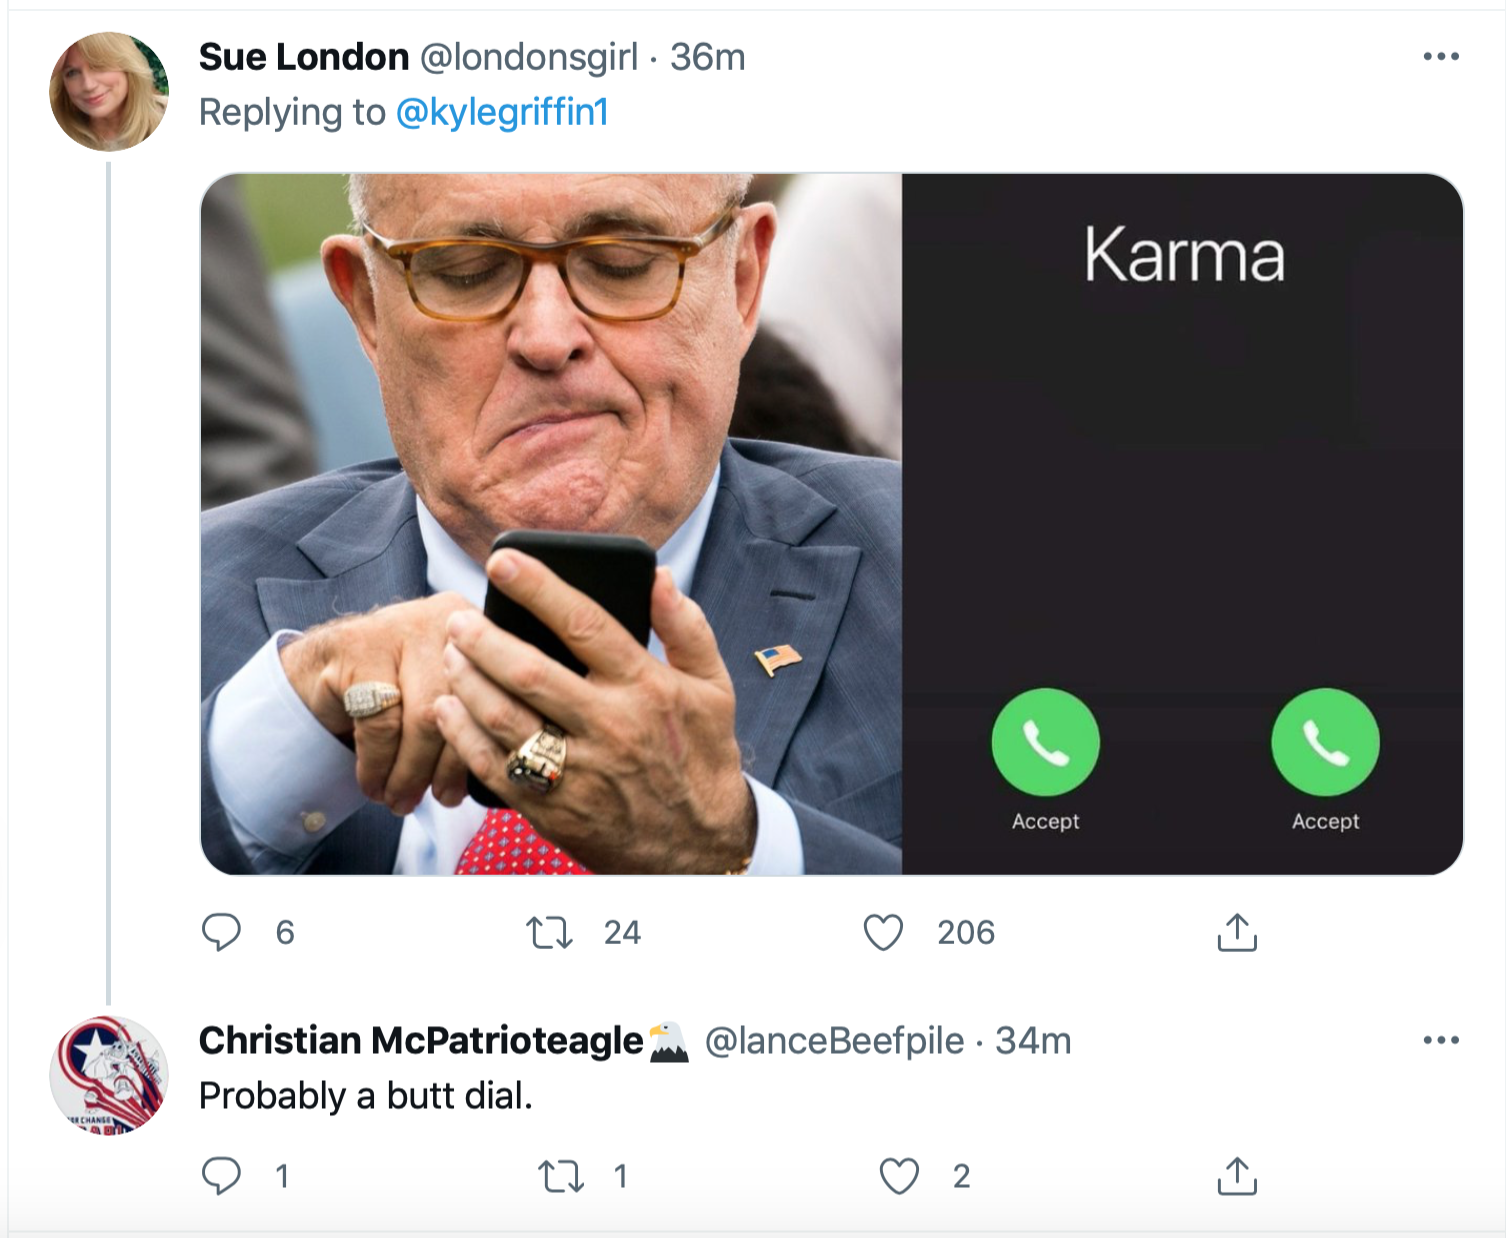 Screen-Shot-2021-08-11-at-6.56.19-PM Court Rules Against Giuliani & Powell In $1.4B Defamation Case Conspiracy Theory Donald Trump Election 2020 Featured Politics Top Stories